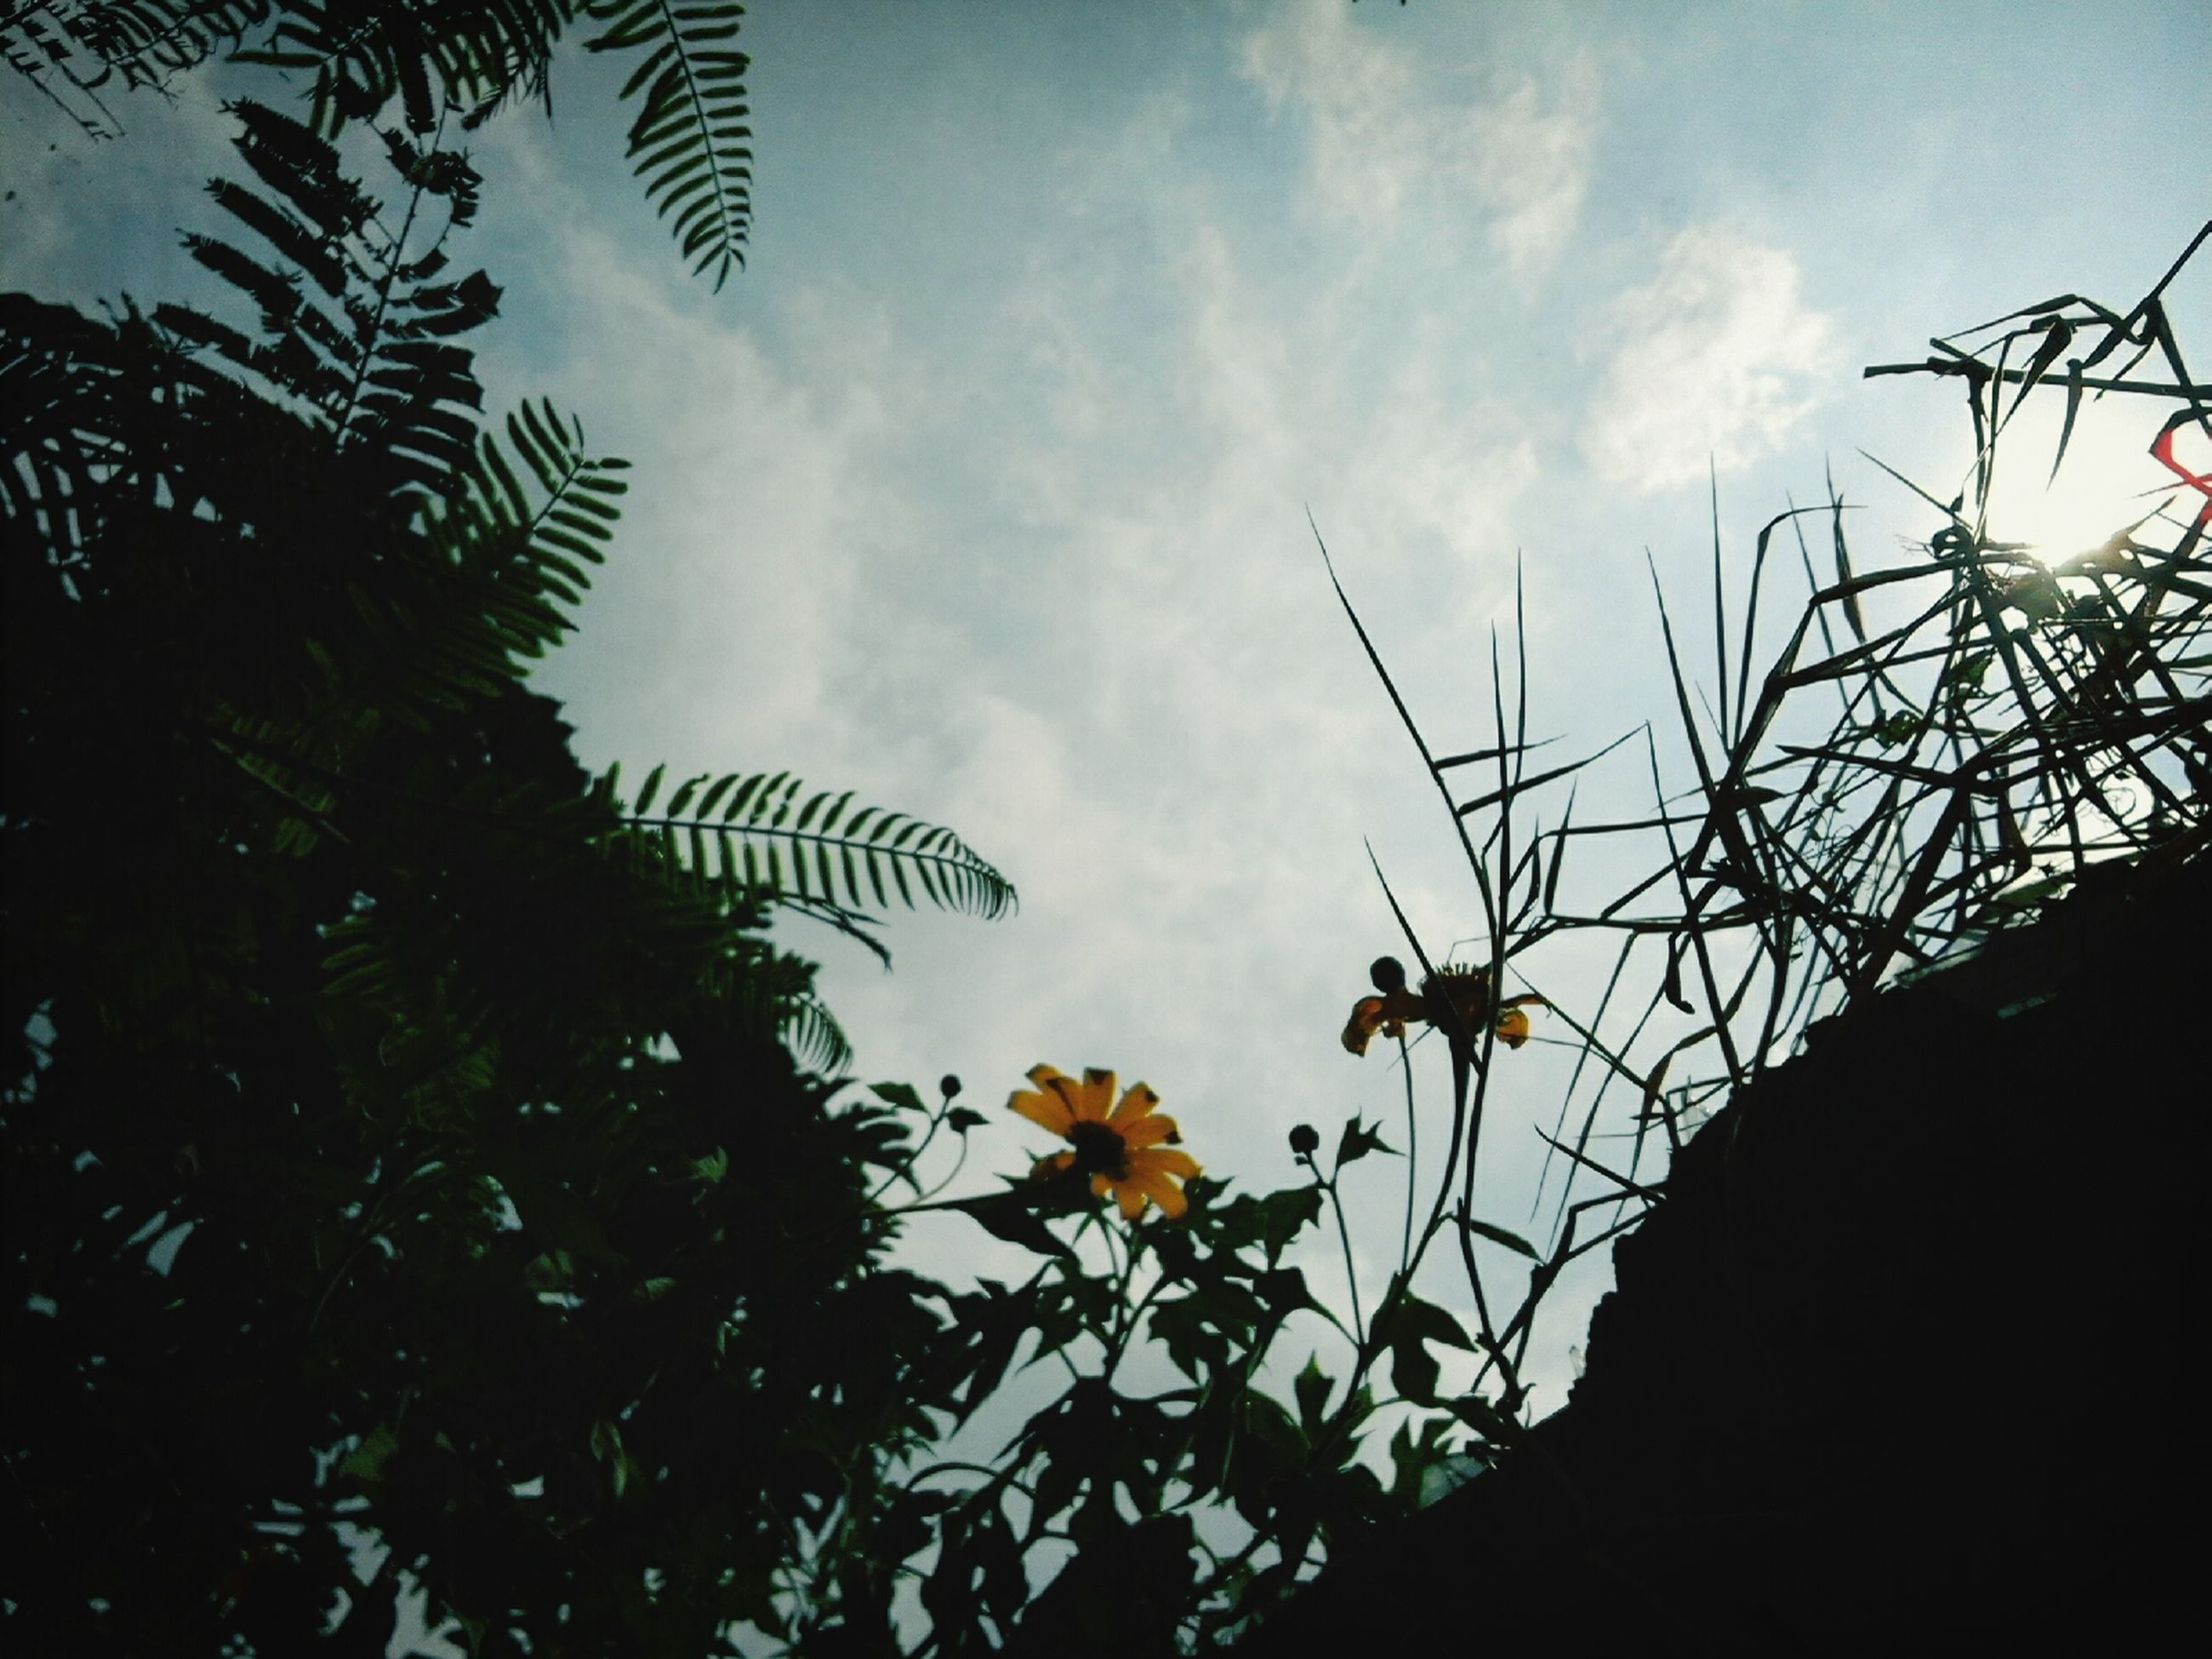 low angle view, sky, growth, plant, leaf, nature, cloud - sky, flower, silhouette, cloud, fragility, outdoors, no people, beauty in nature, day, close-up, stem, sunlight, focus on foreground, cloudy